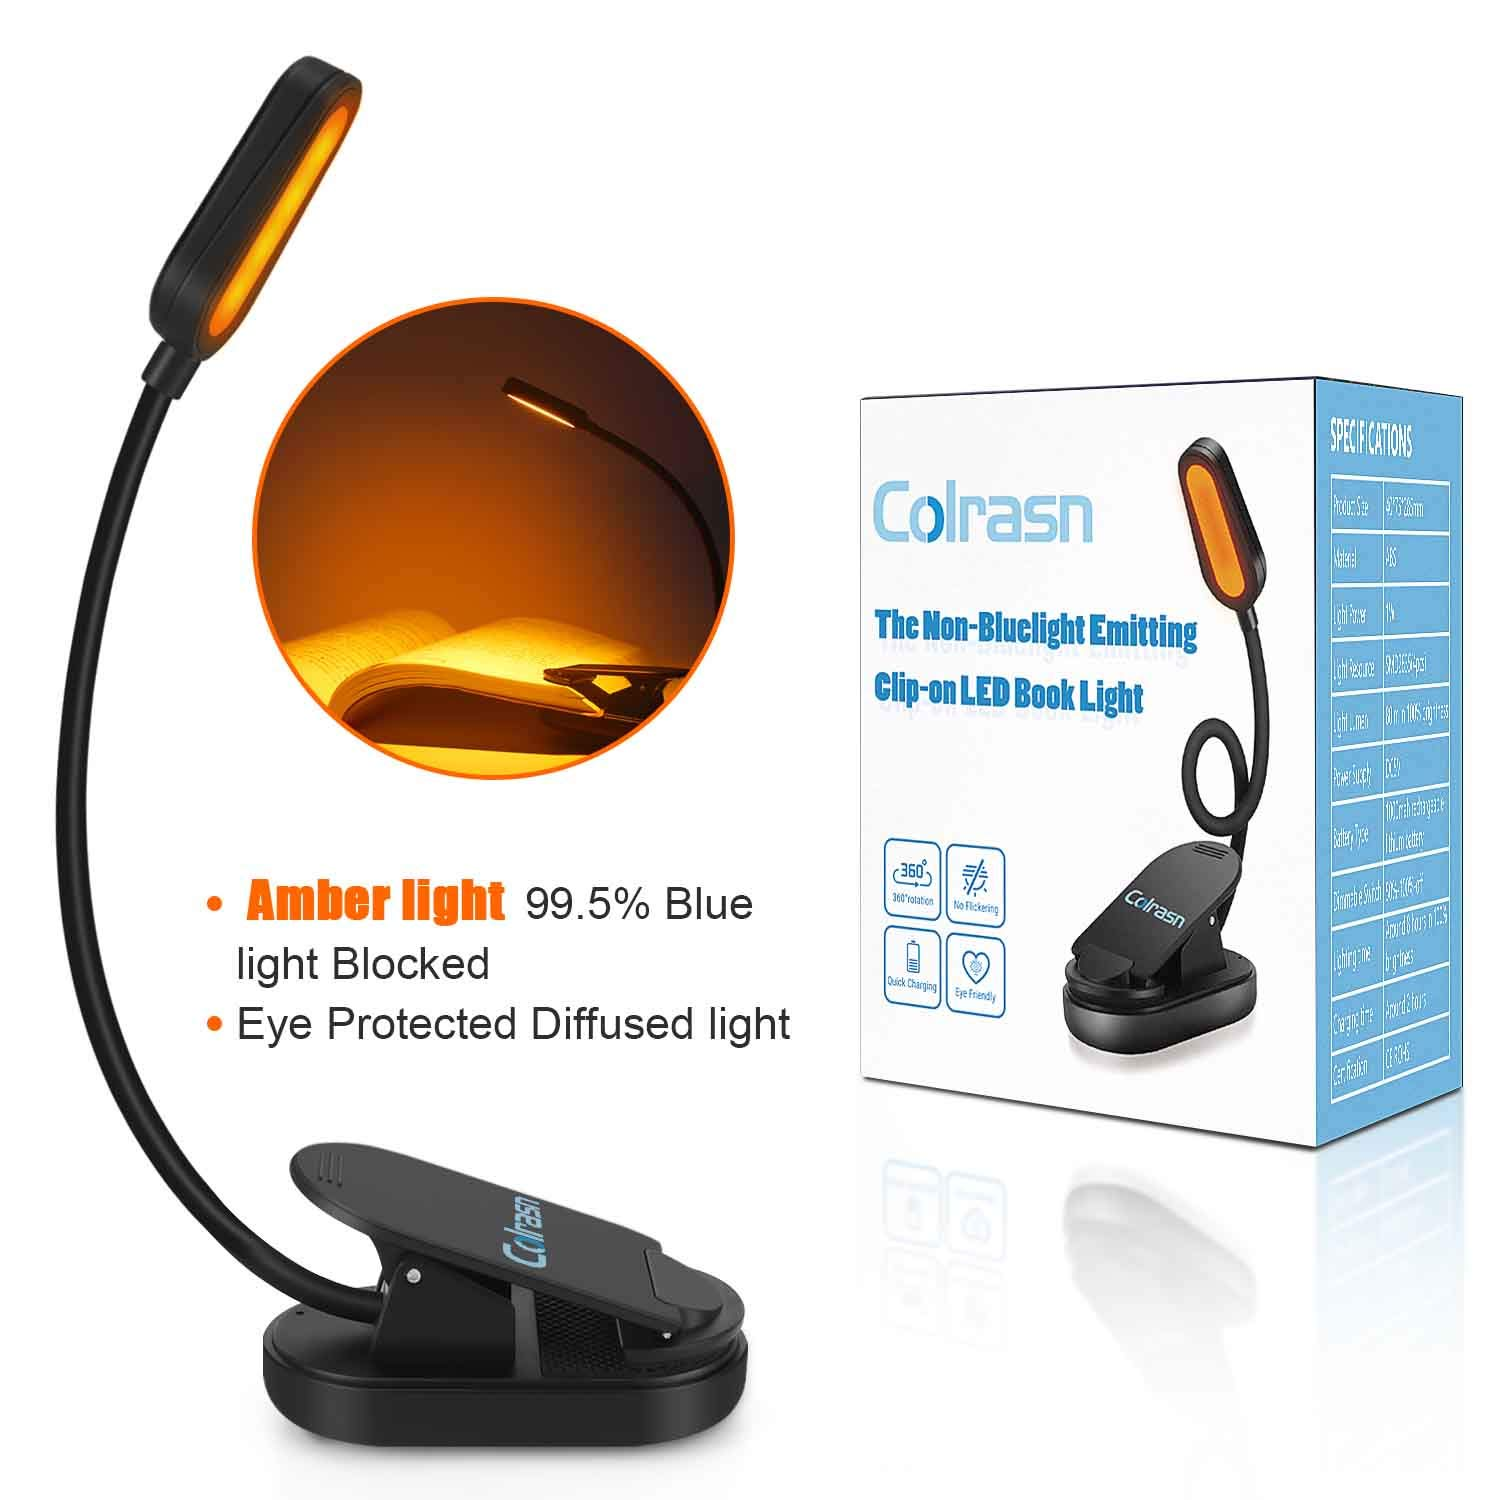 Book Light, Blue Light Blocking, Amber Clip-On Reading Light, 1600K Warm LEDs for Reading in Bed. Sleep Aid Light. 360°Flexible Neck Touch Control, Adjustable Brightness, for Kids and Kindle